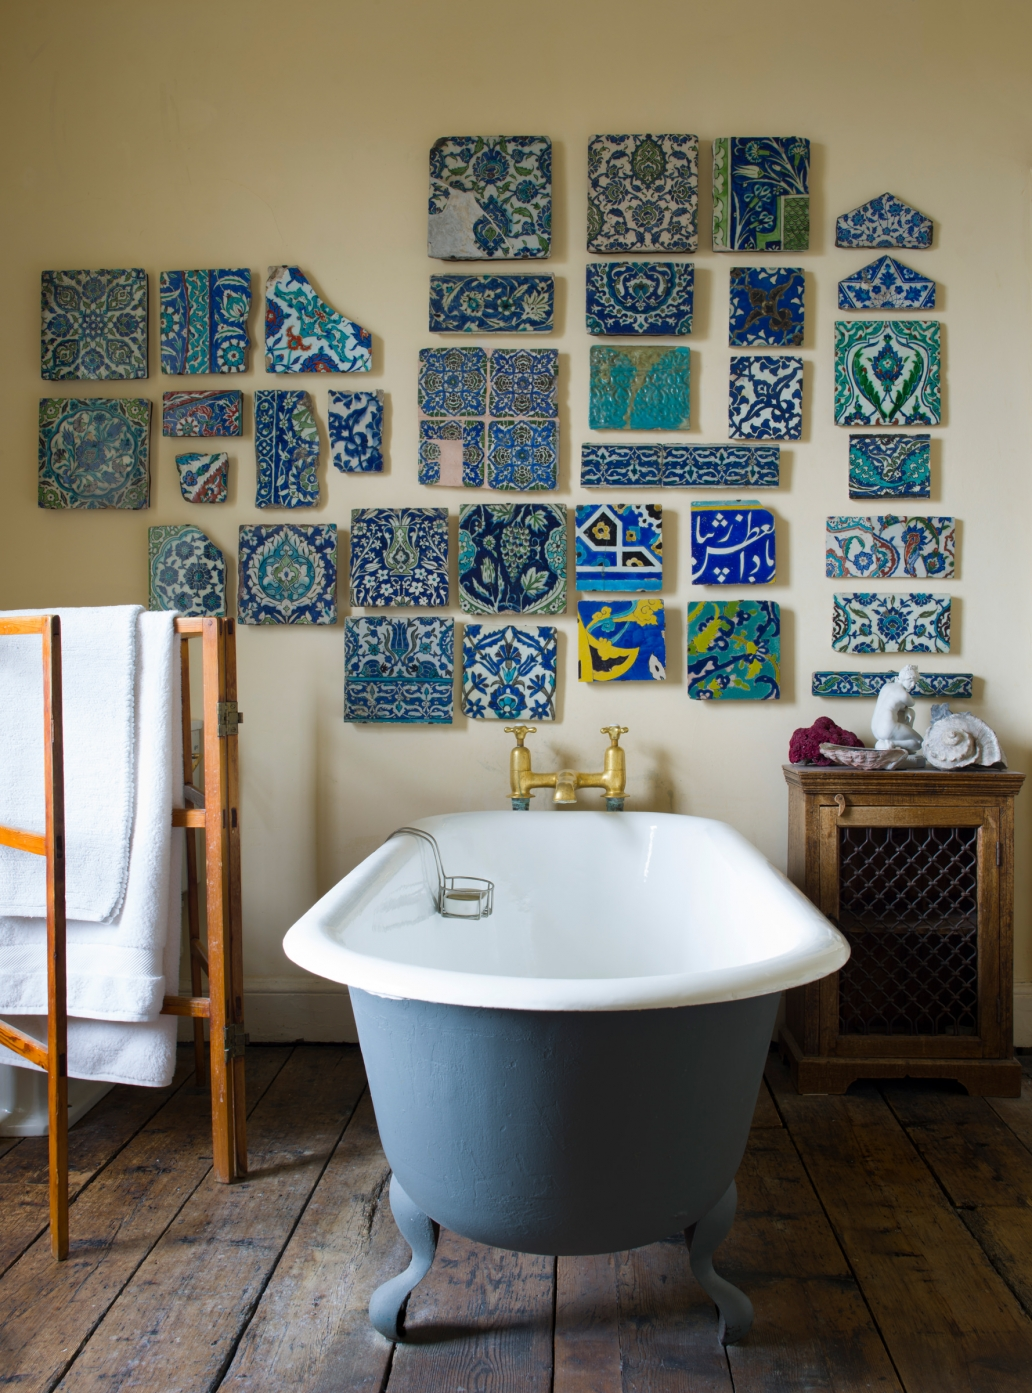 An elegant Georgian bathroom, decorated with a collection of elaborate, turquoise antique tiles from the Ottoman Empire.